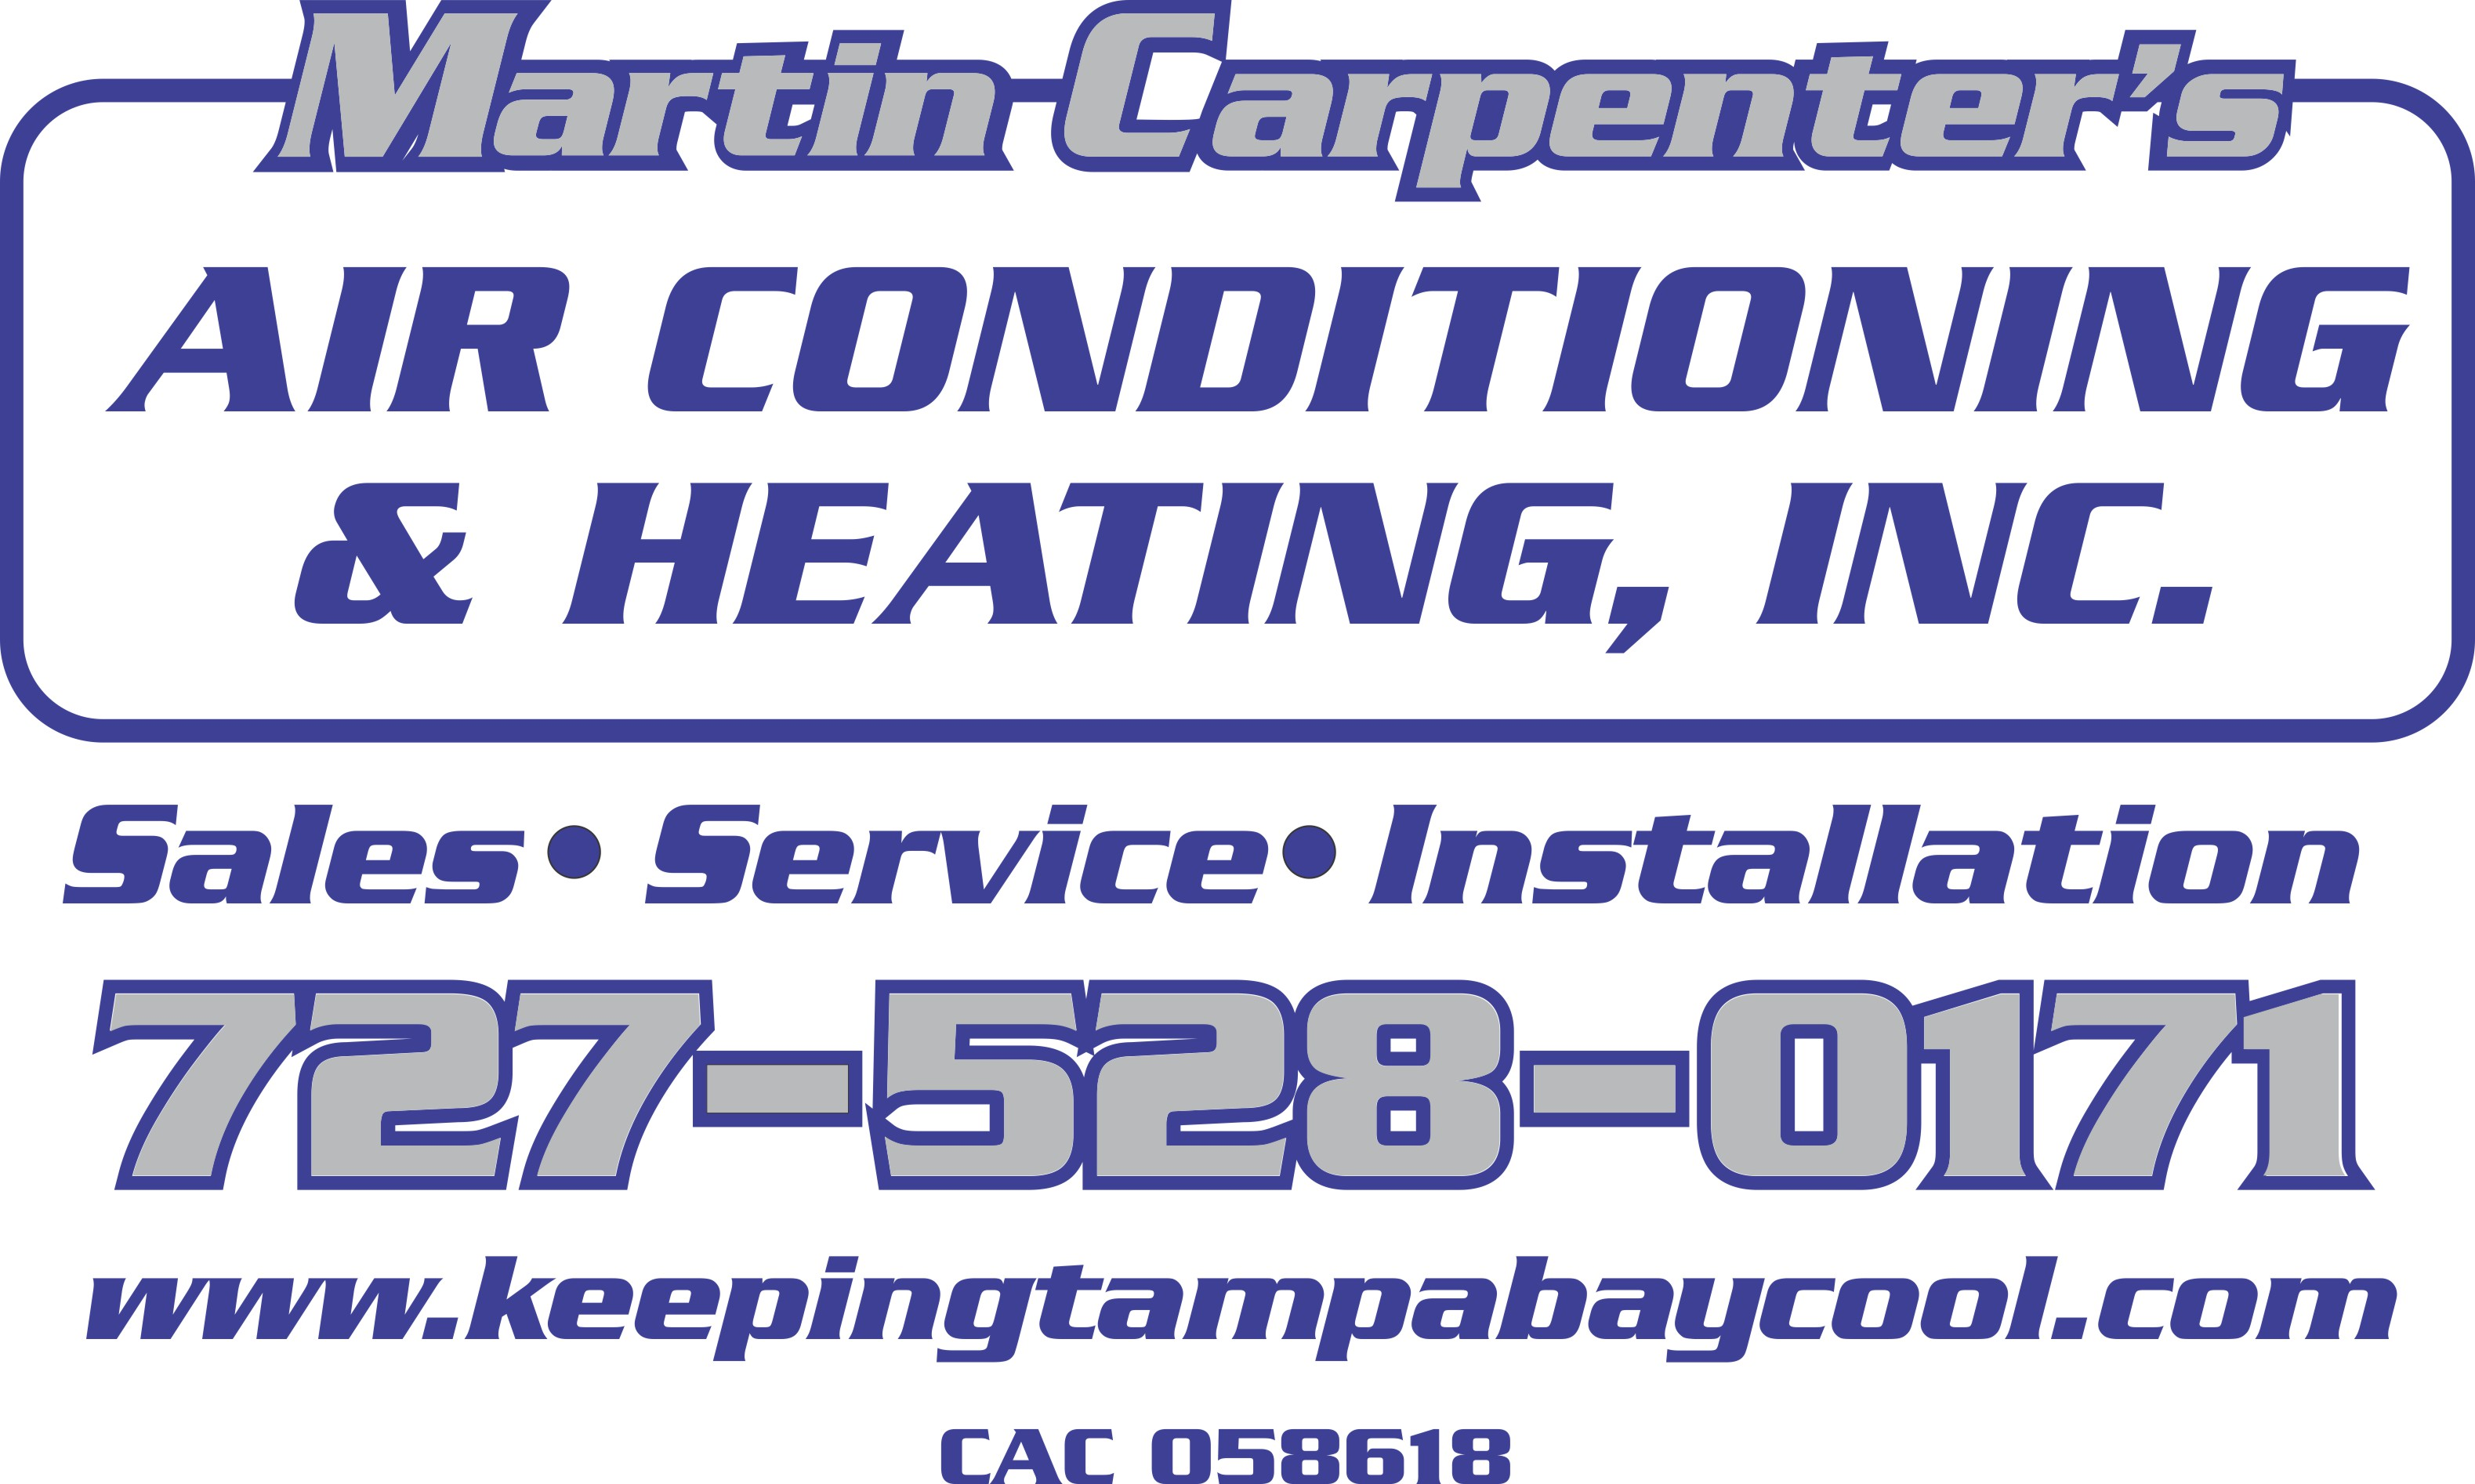 Martin Carpenter's Air Conditioning & Heating, Inc.